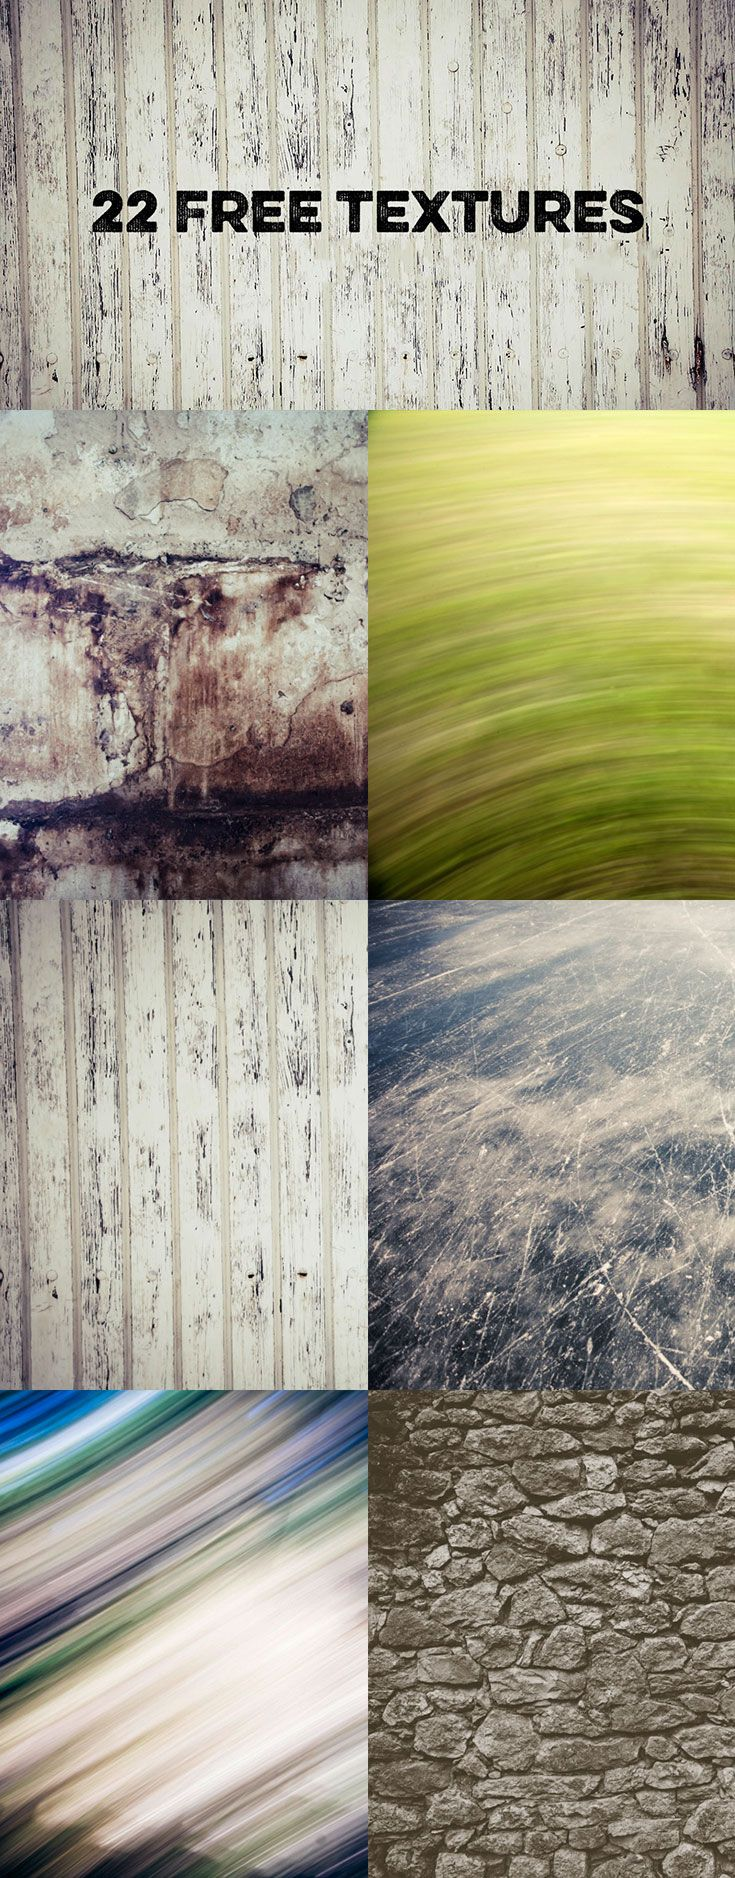 Free Hi-Res stock photo for your next project. http://photoshoproadmap.com/download-22-nice-free-textures-from-raumrot/?utm_campaign=coschedule&utm_source=pinterest&utm_medium=Photoshop%20Roadmap&utm_content=Download%2022%20Nice%20Free%20Textures%20from%20Raumrot